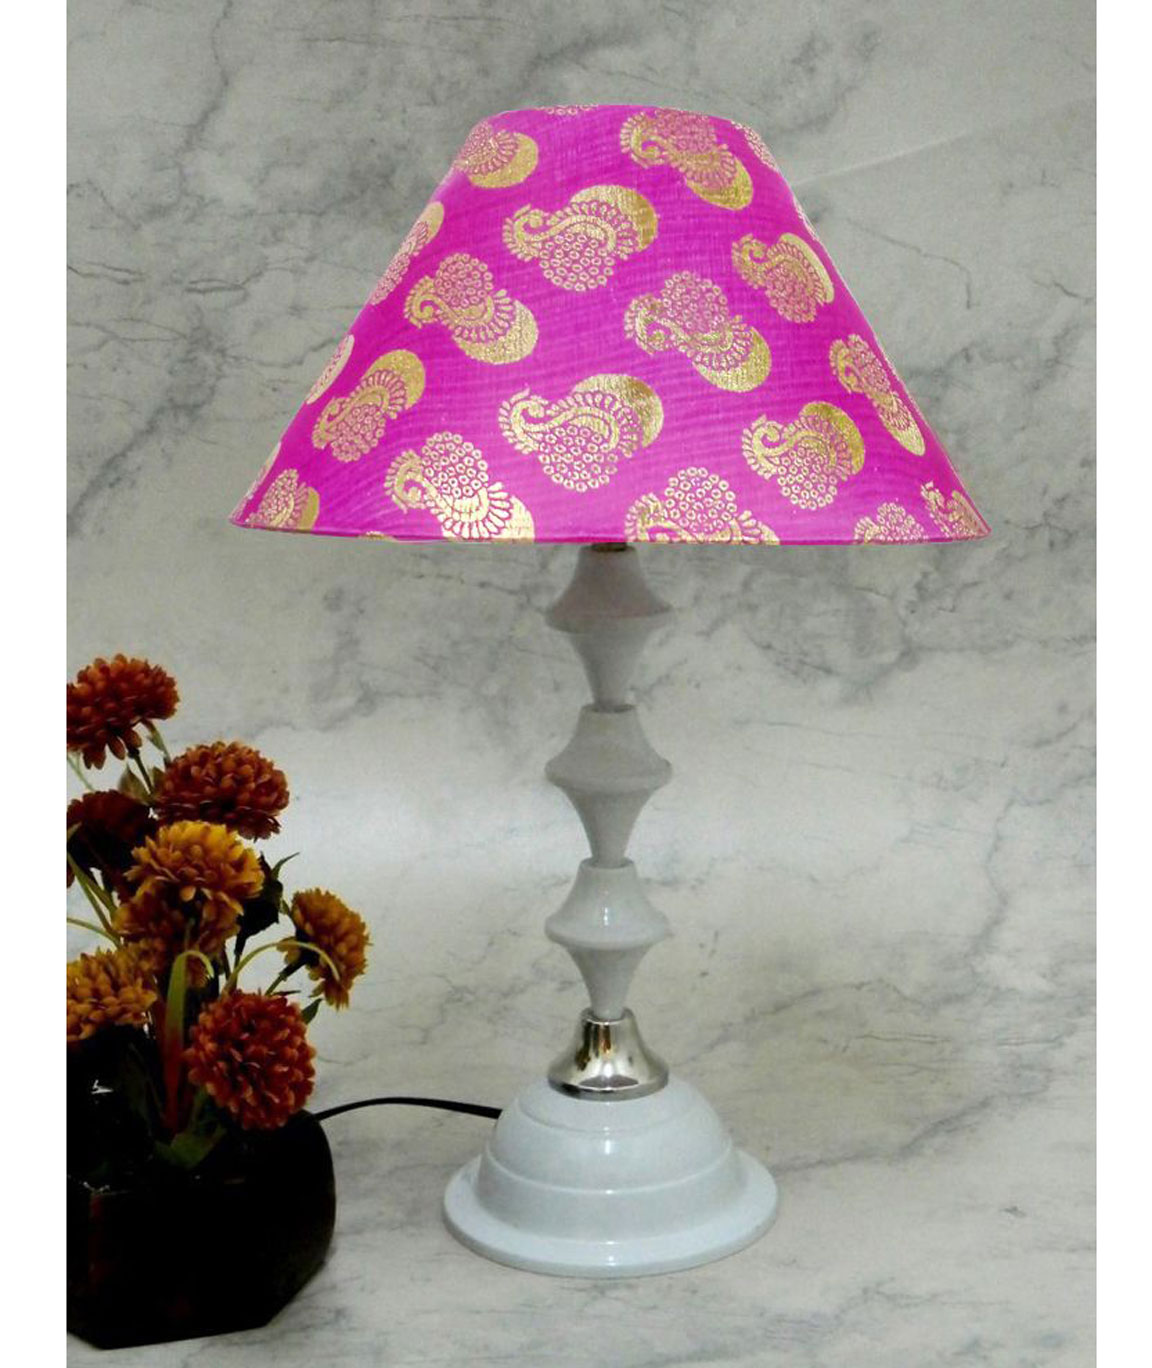 RDC White Silver Table Lamp with 10 Inches Round Pink Golden Designer Lamp Shade